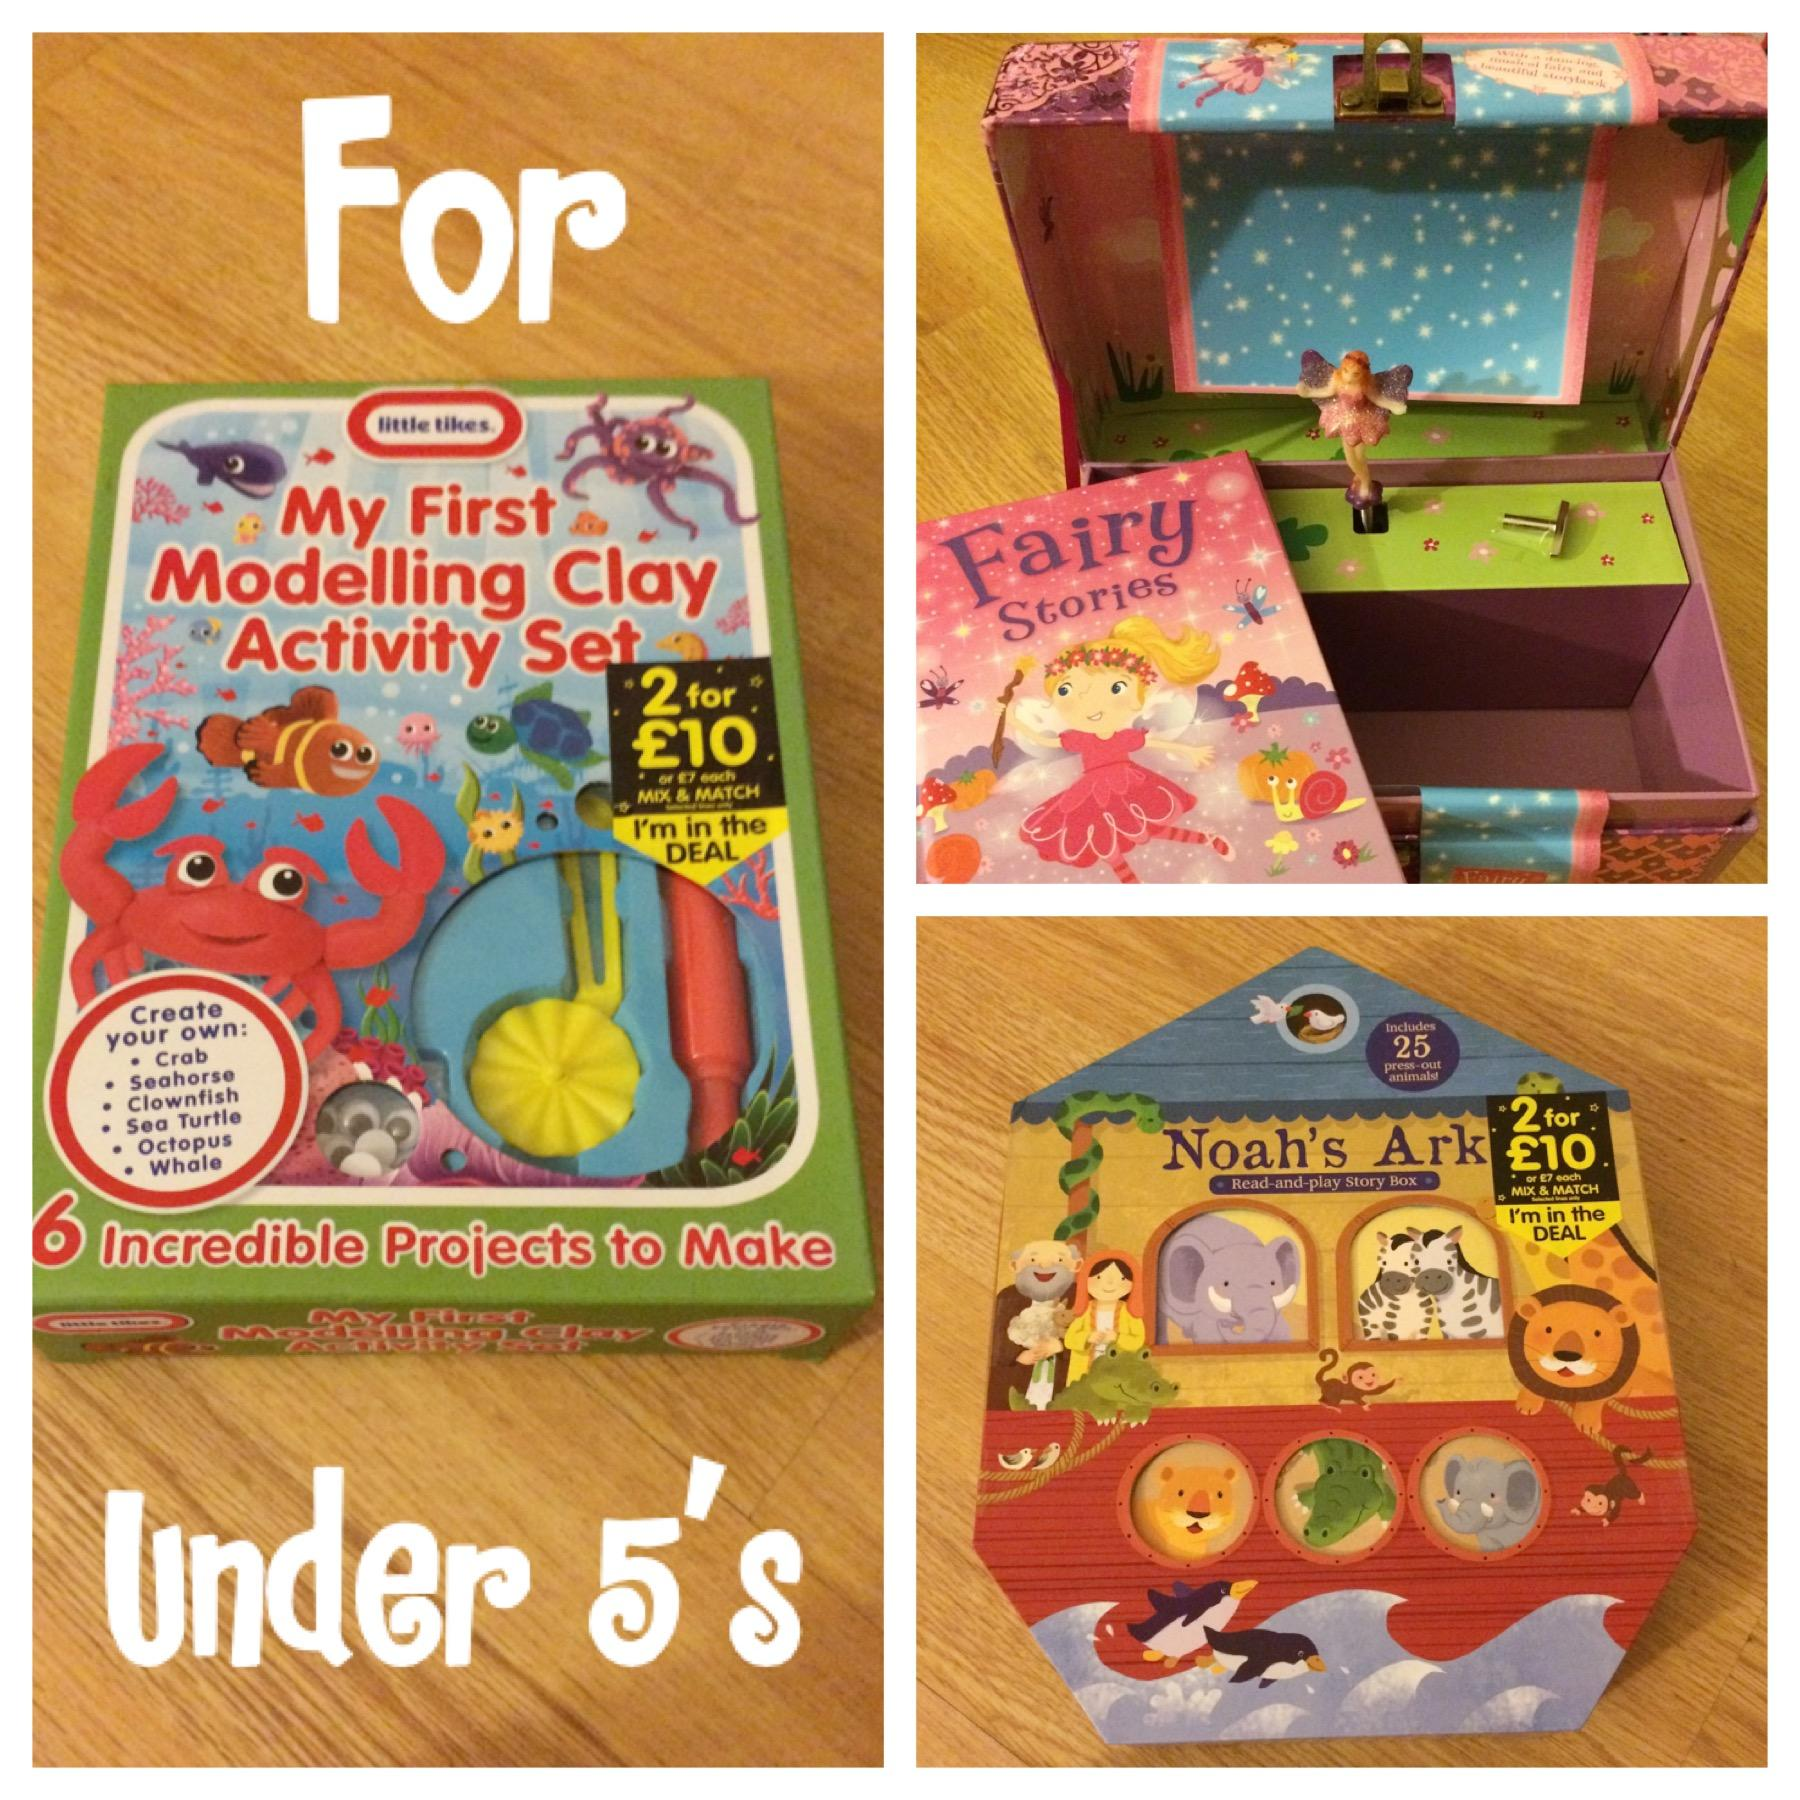 Christmas bargains for under 5's